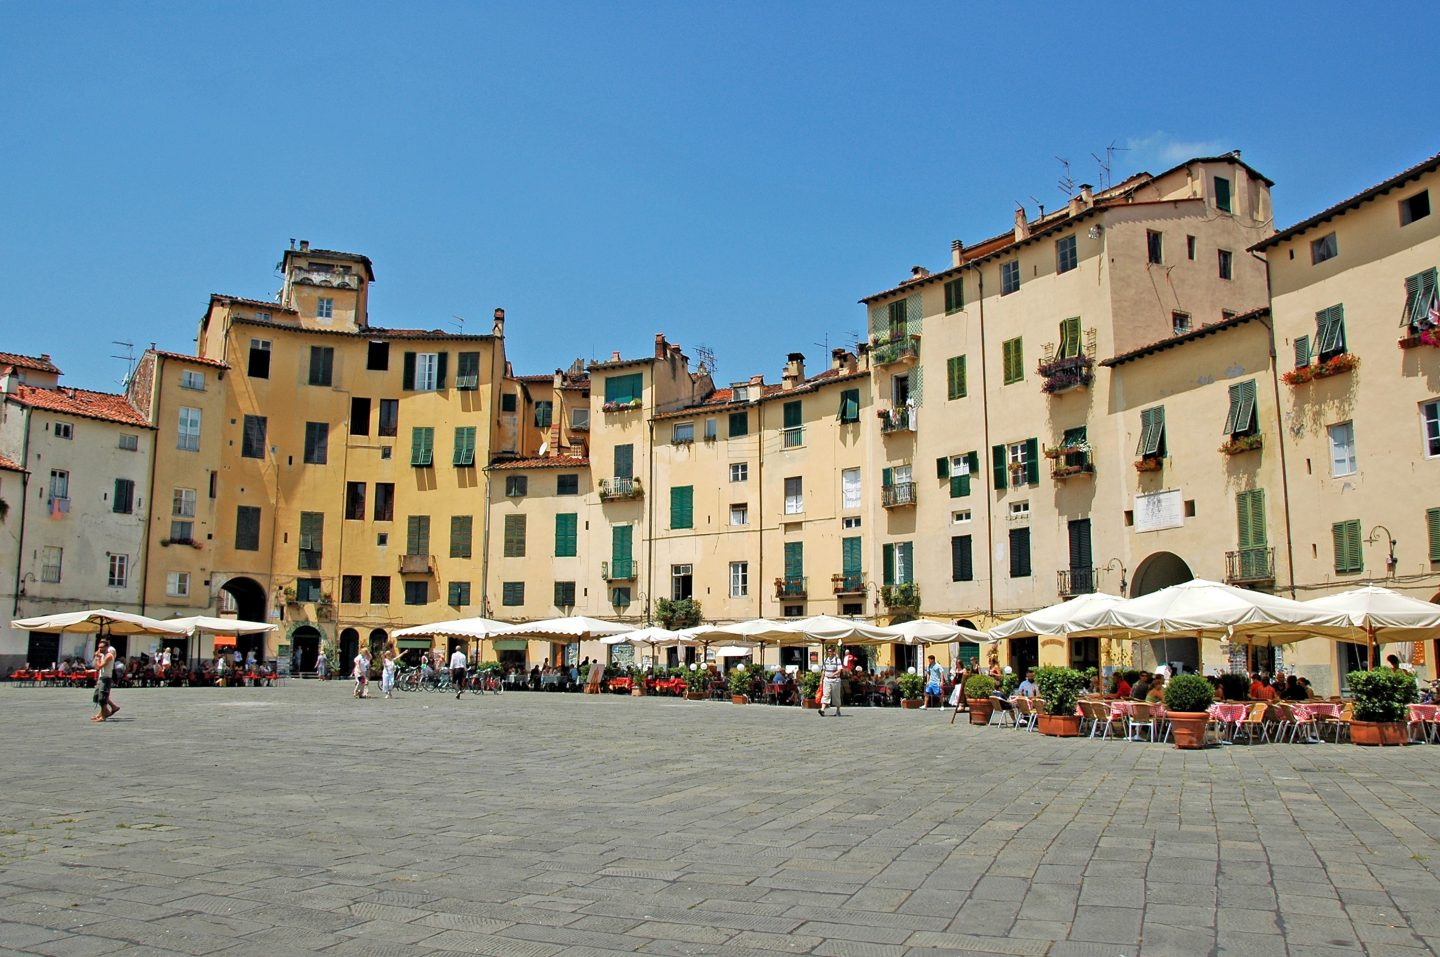 Piazza Anfiteatro in Lucca, family holiday in italy